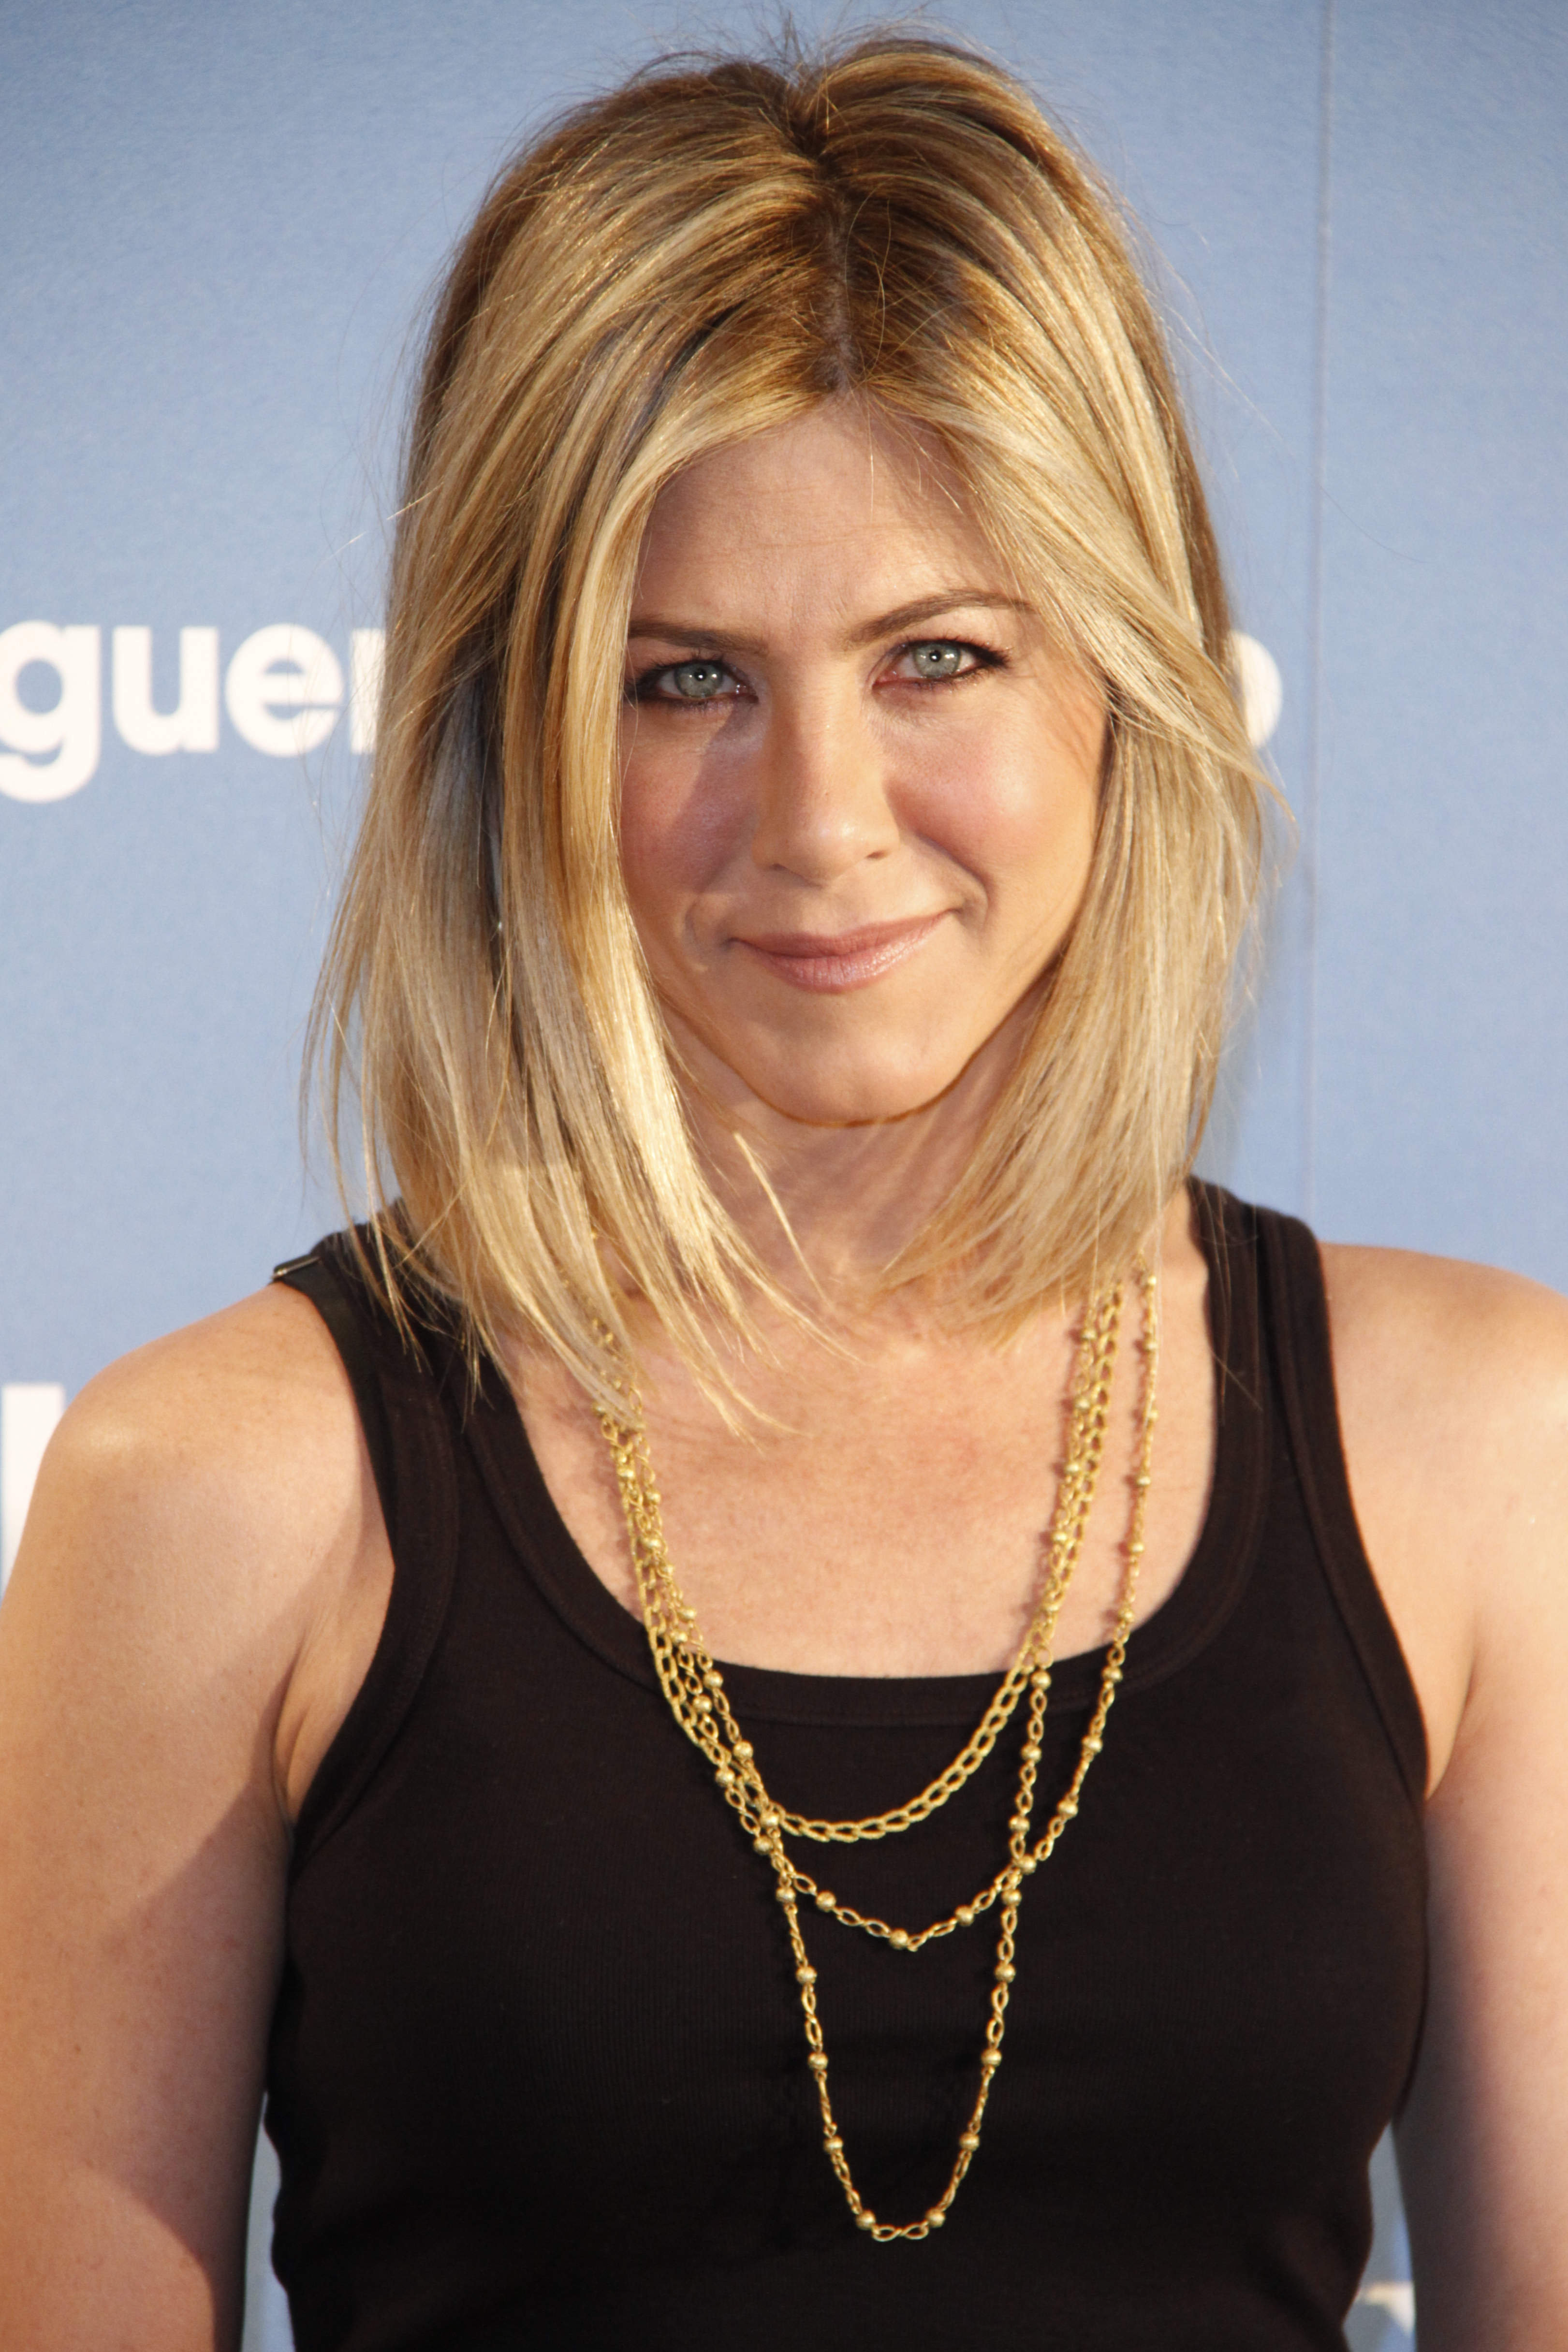 Jennifer Aniston Reveals A New Haircut Flare